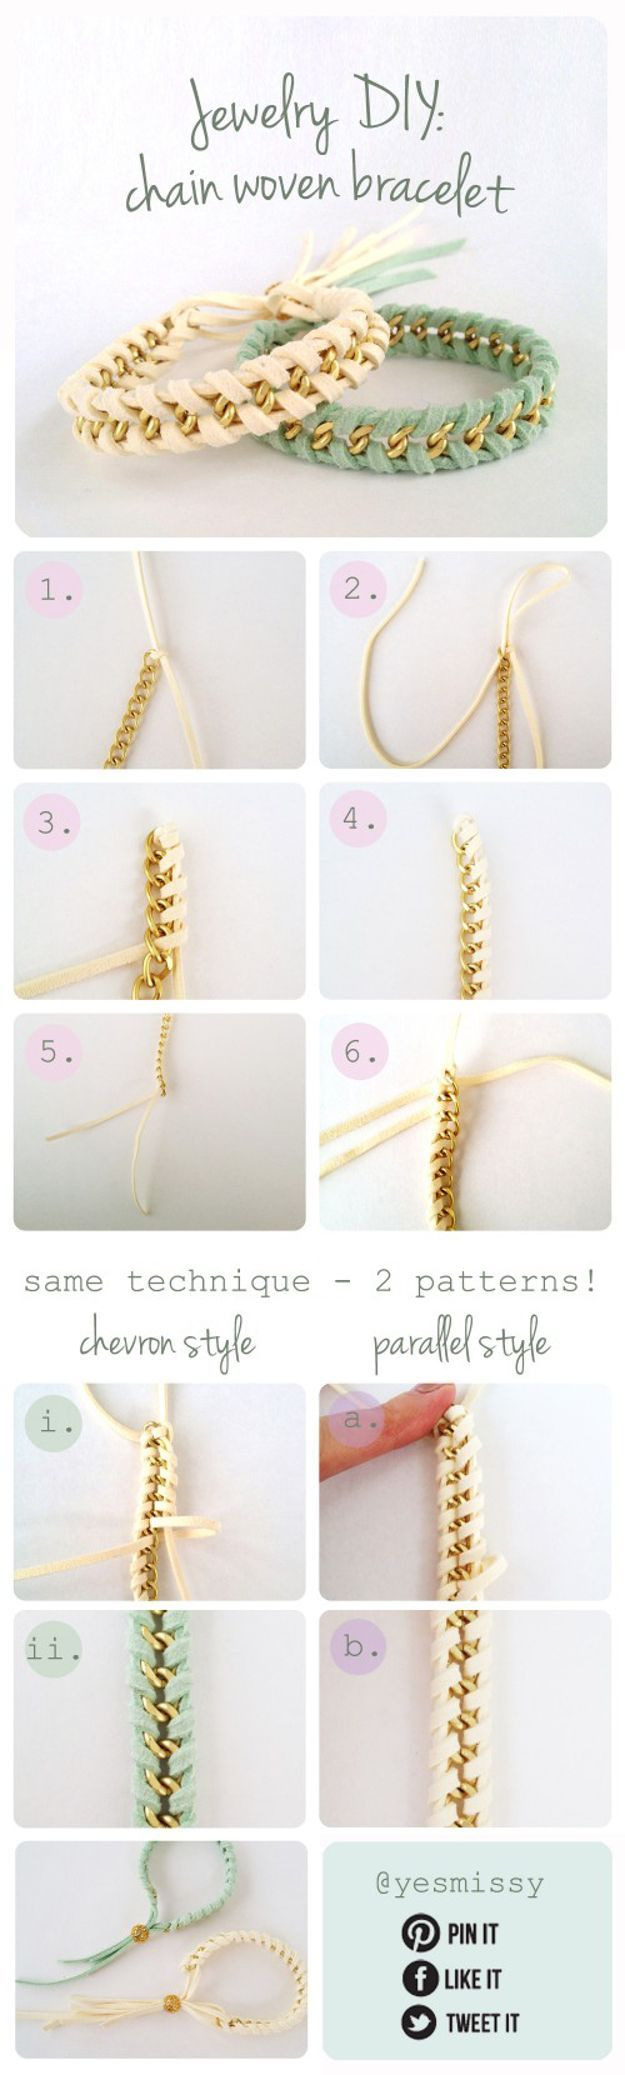 Photo of How to Create Braided Bracelets DIY Projects Craft Ideas & How To's for Home Decor with Videos